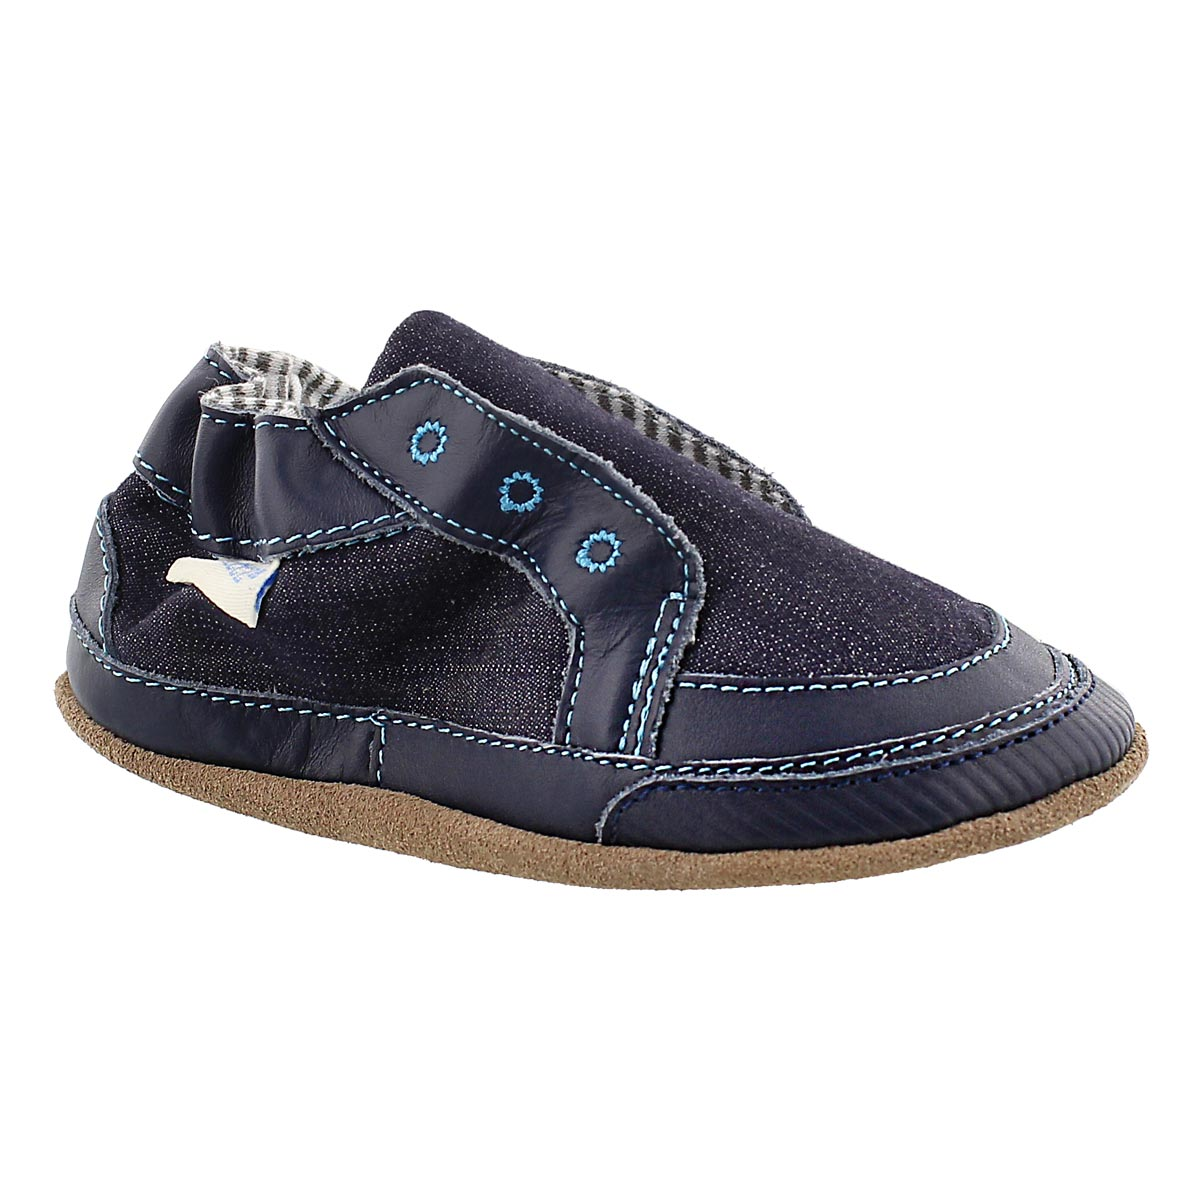 Inf Stylish Steve navy soft slipper